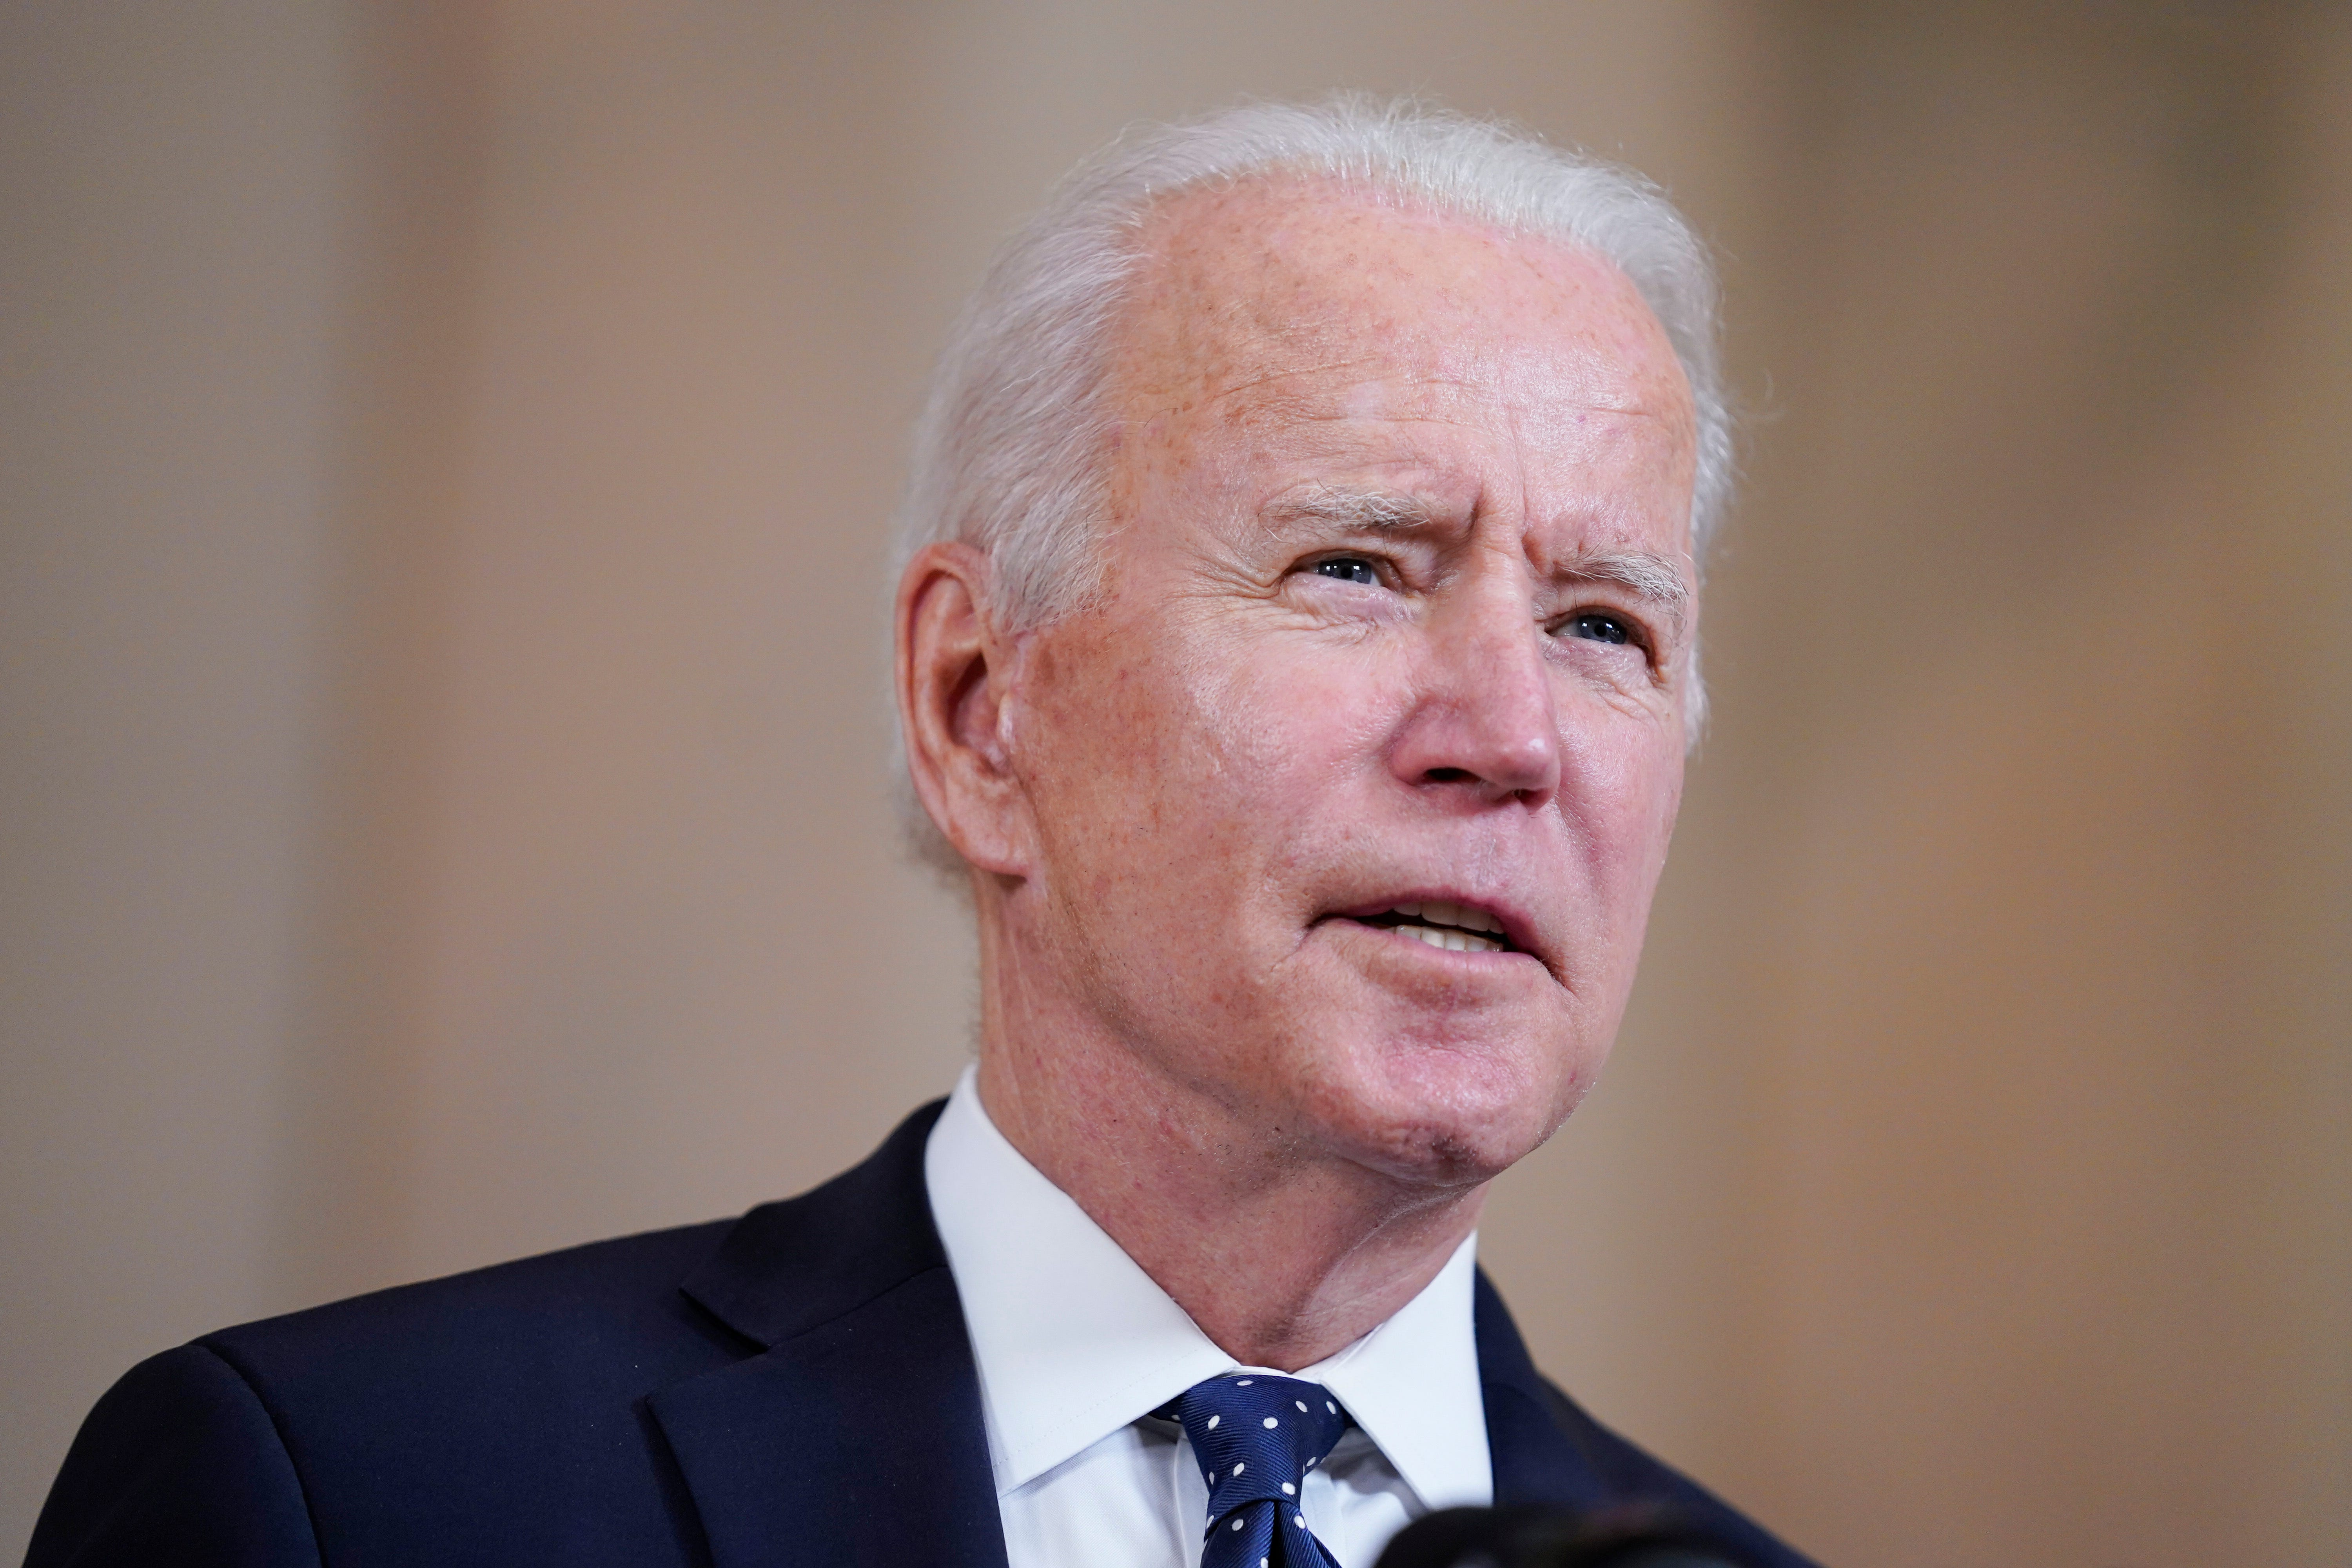 Biden holding out for bipartisan support for immigration measures, White House says